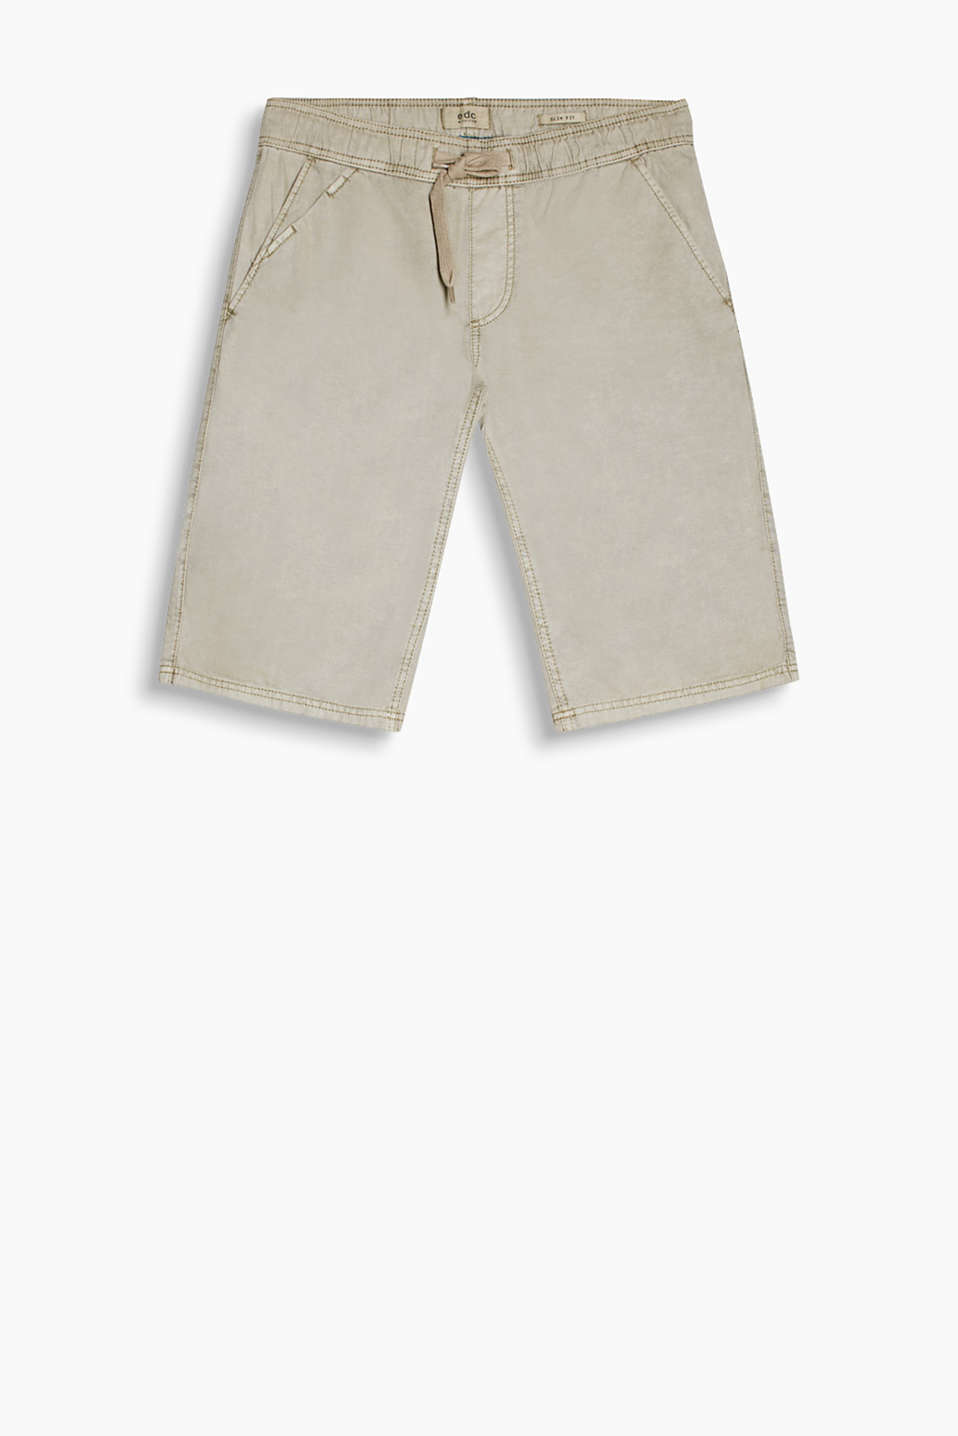 Bermuda shorts in a grained cotton-linen blend with drawstring ties